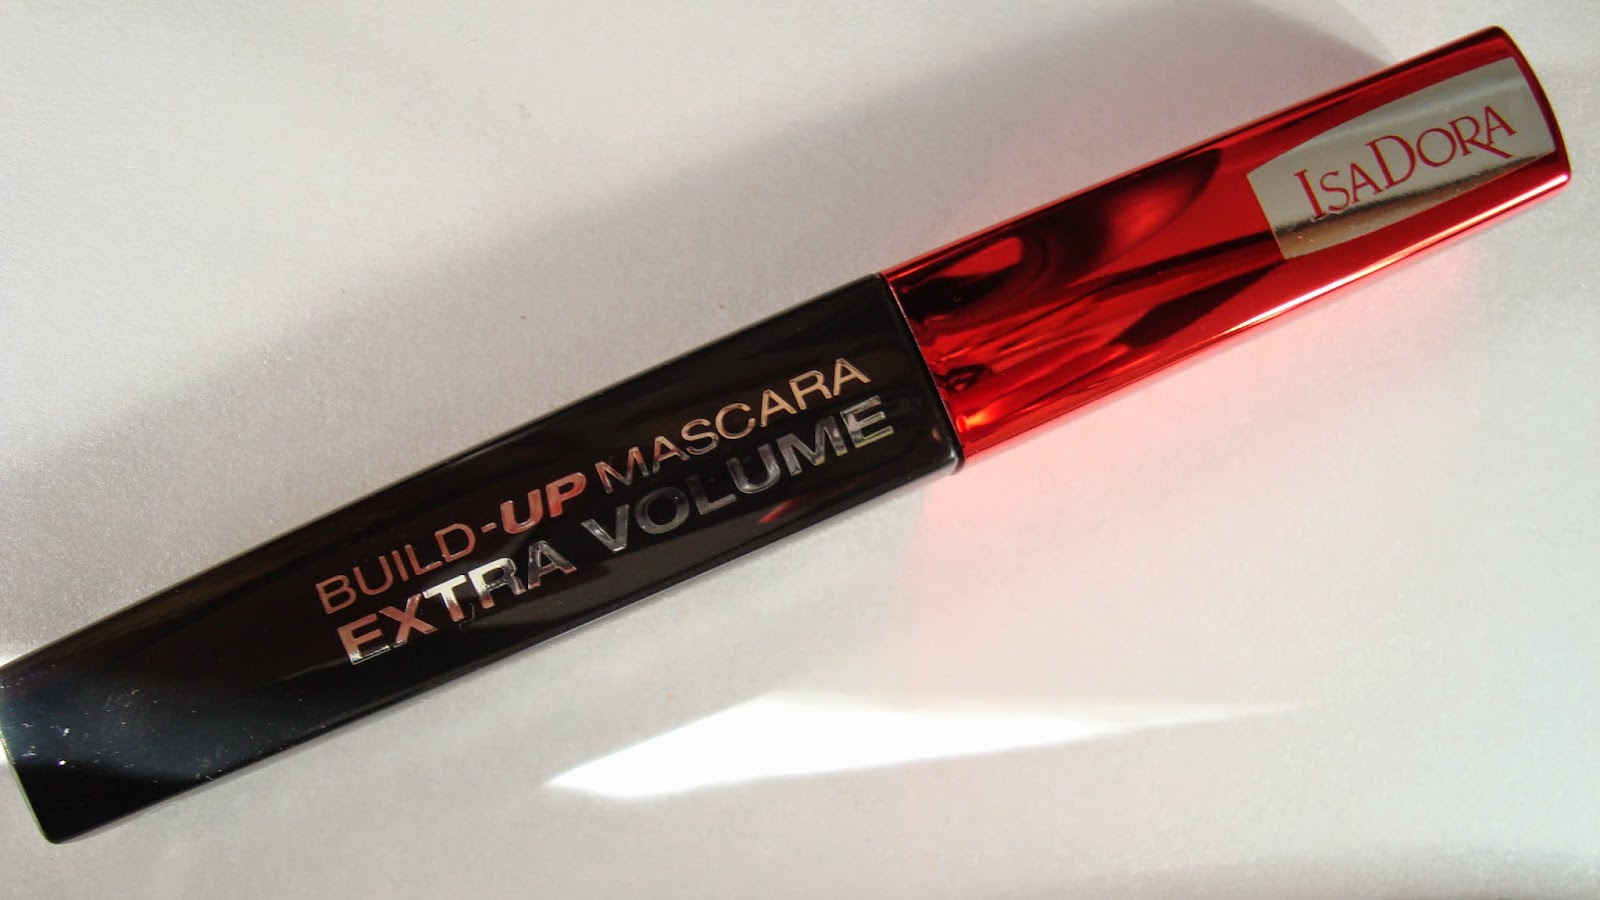 IsaDora, Build Up - Mascara Extra Volume Mascara